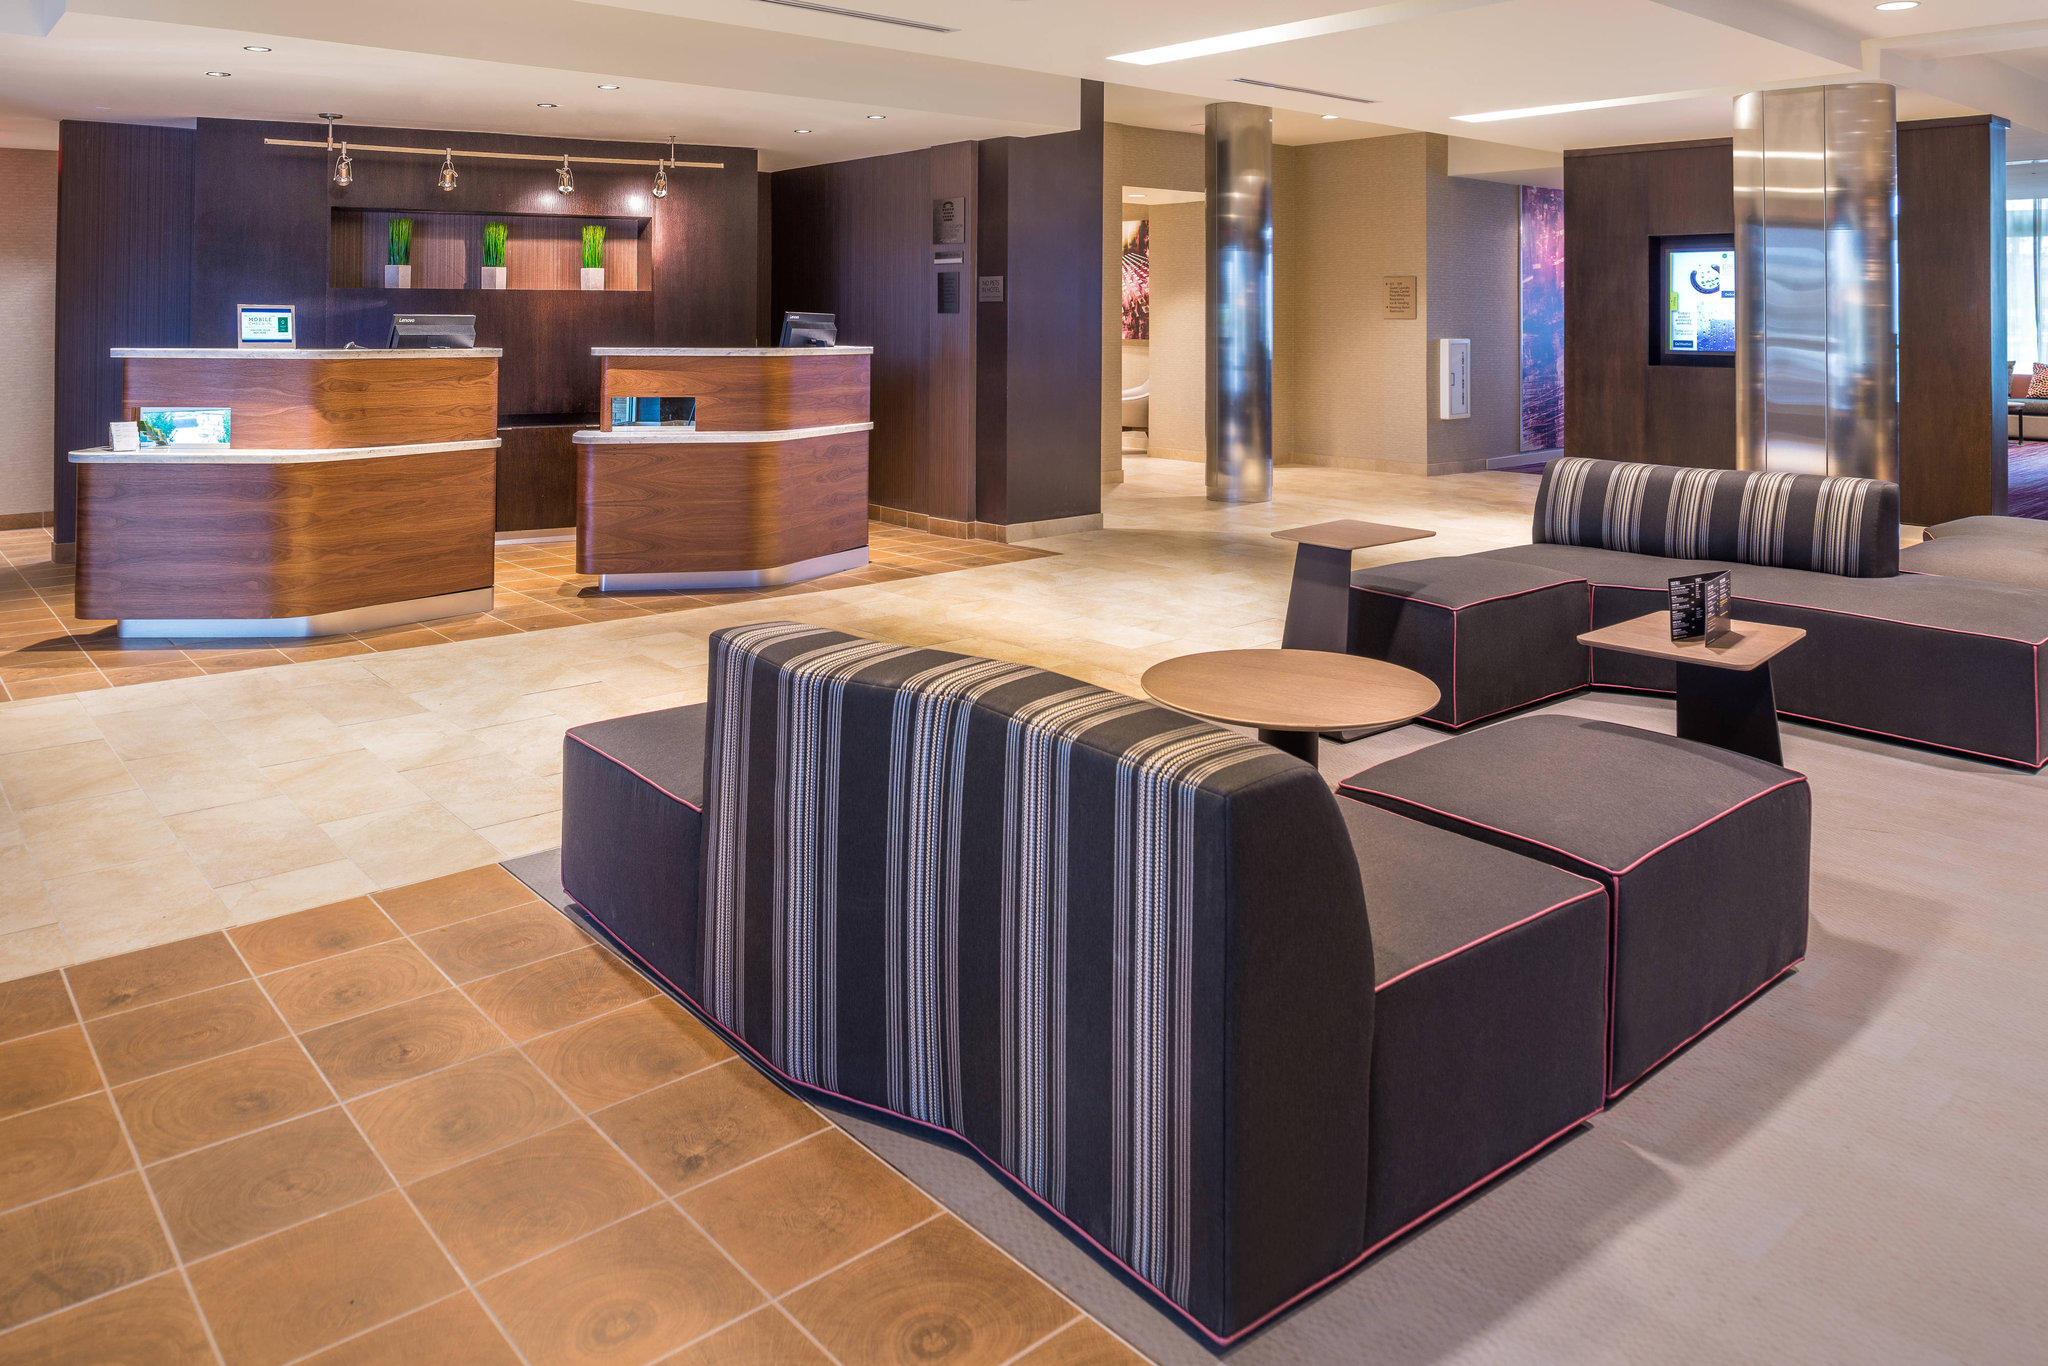 Courtyard by Marriott Detroit Farmington Hills